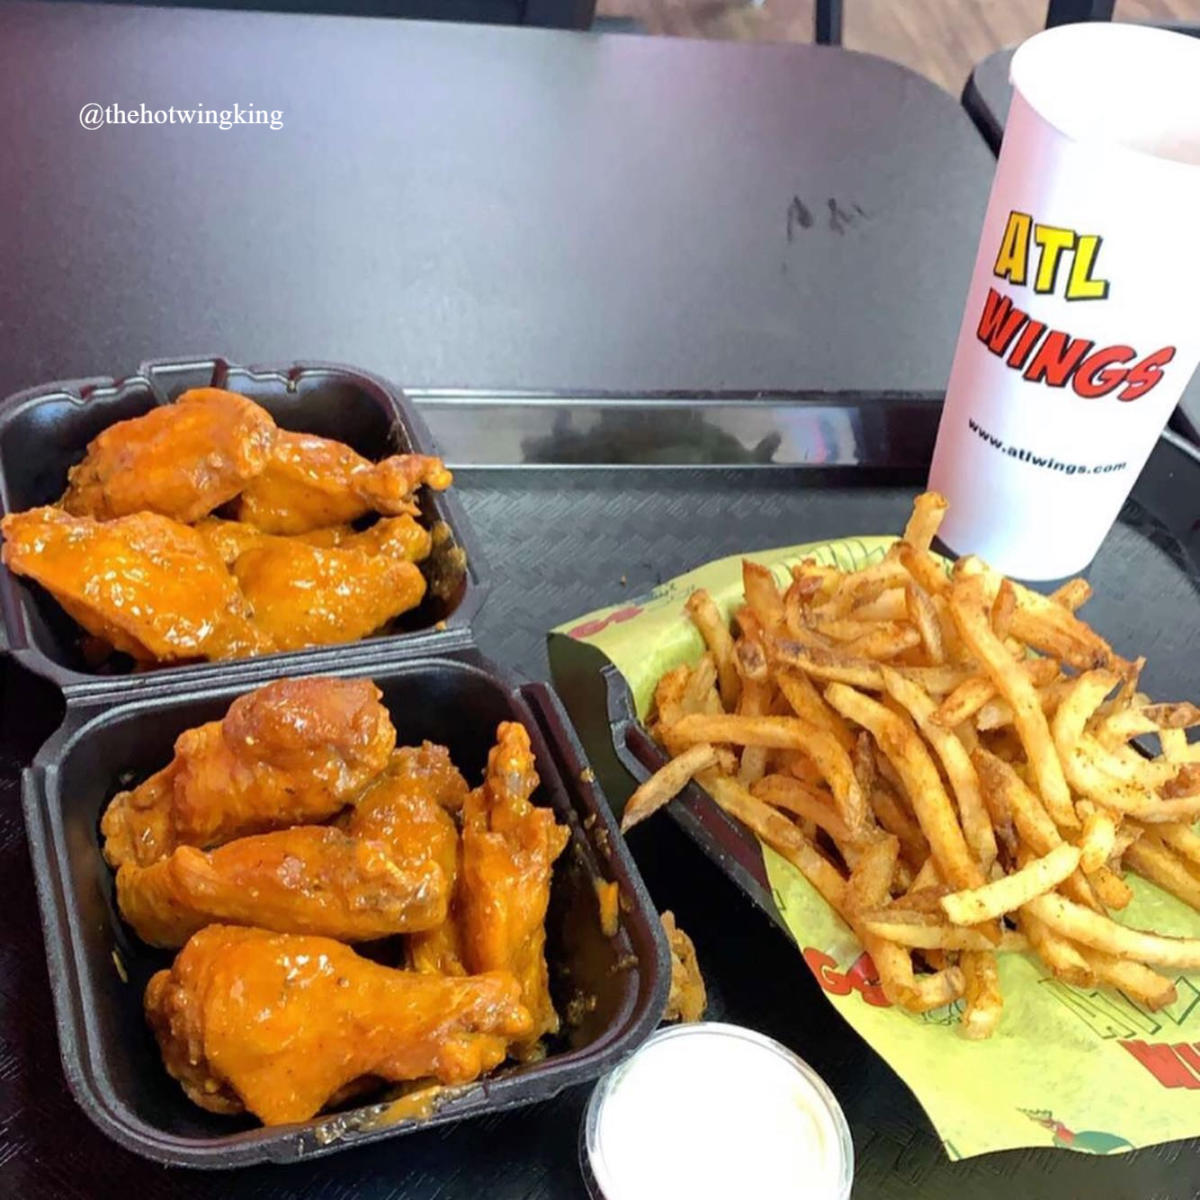 ATL Wings to-go by IG user @thehotwingking